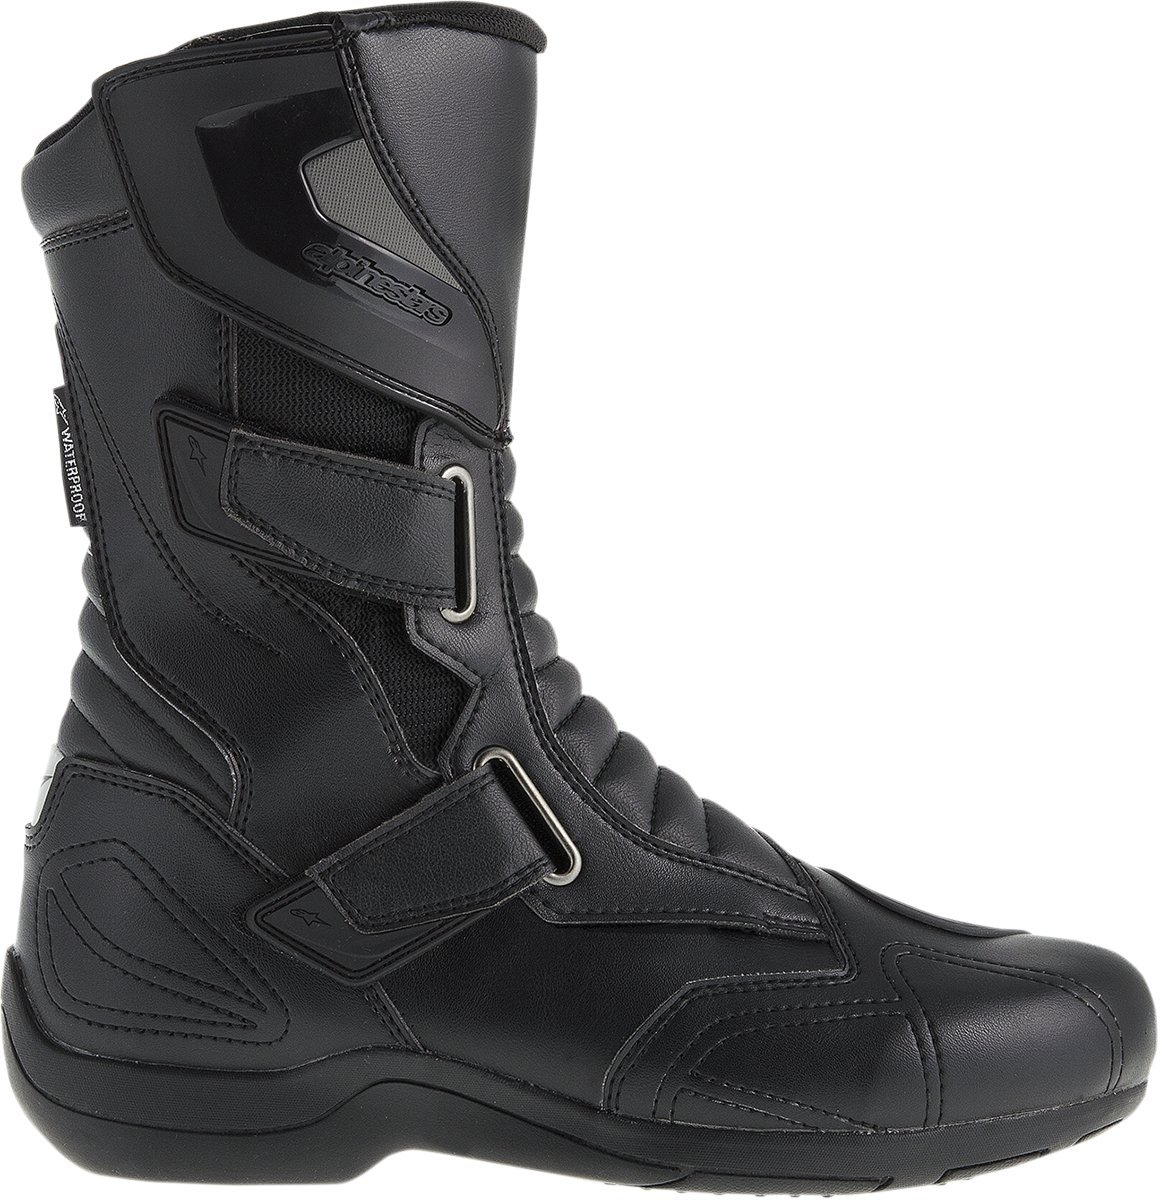 Alpinestars Roam Waterproof Motorcycle Boots